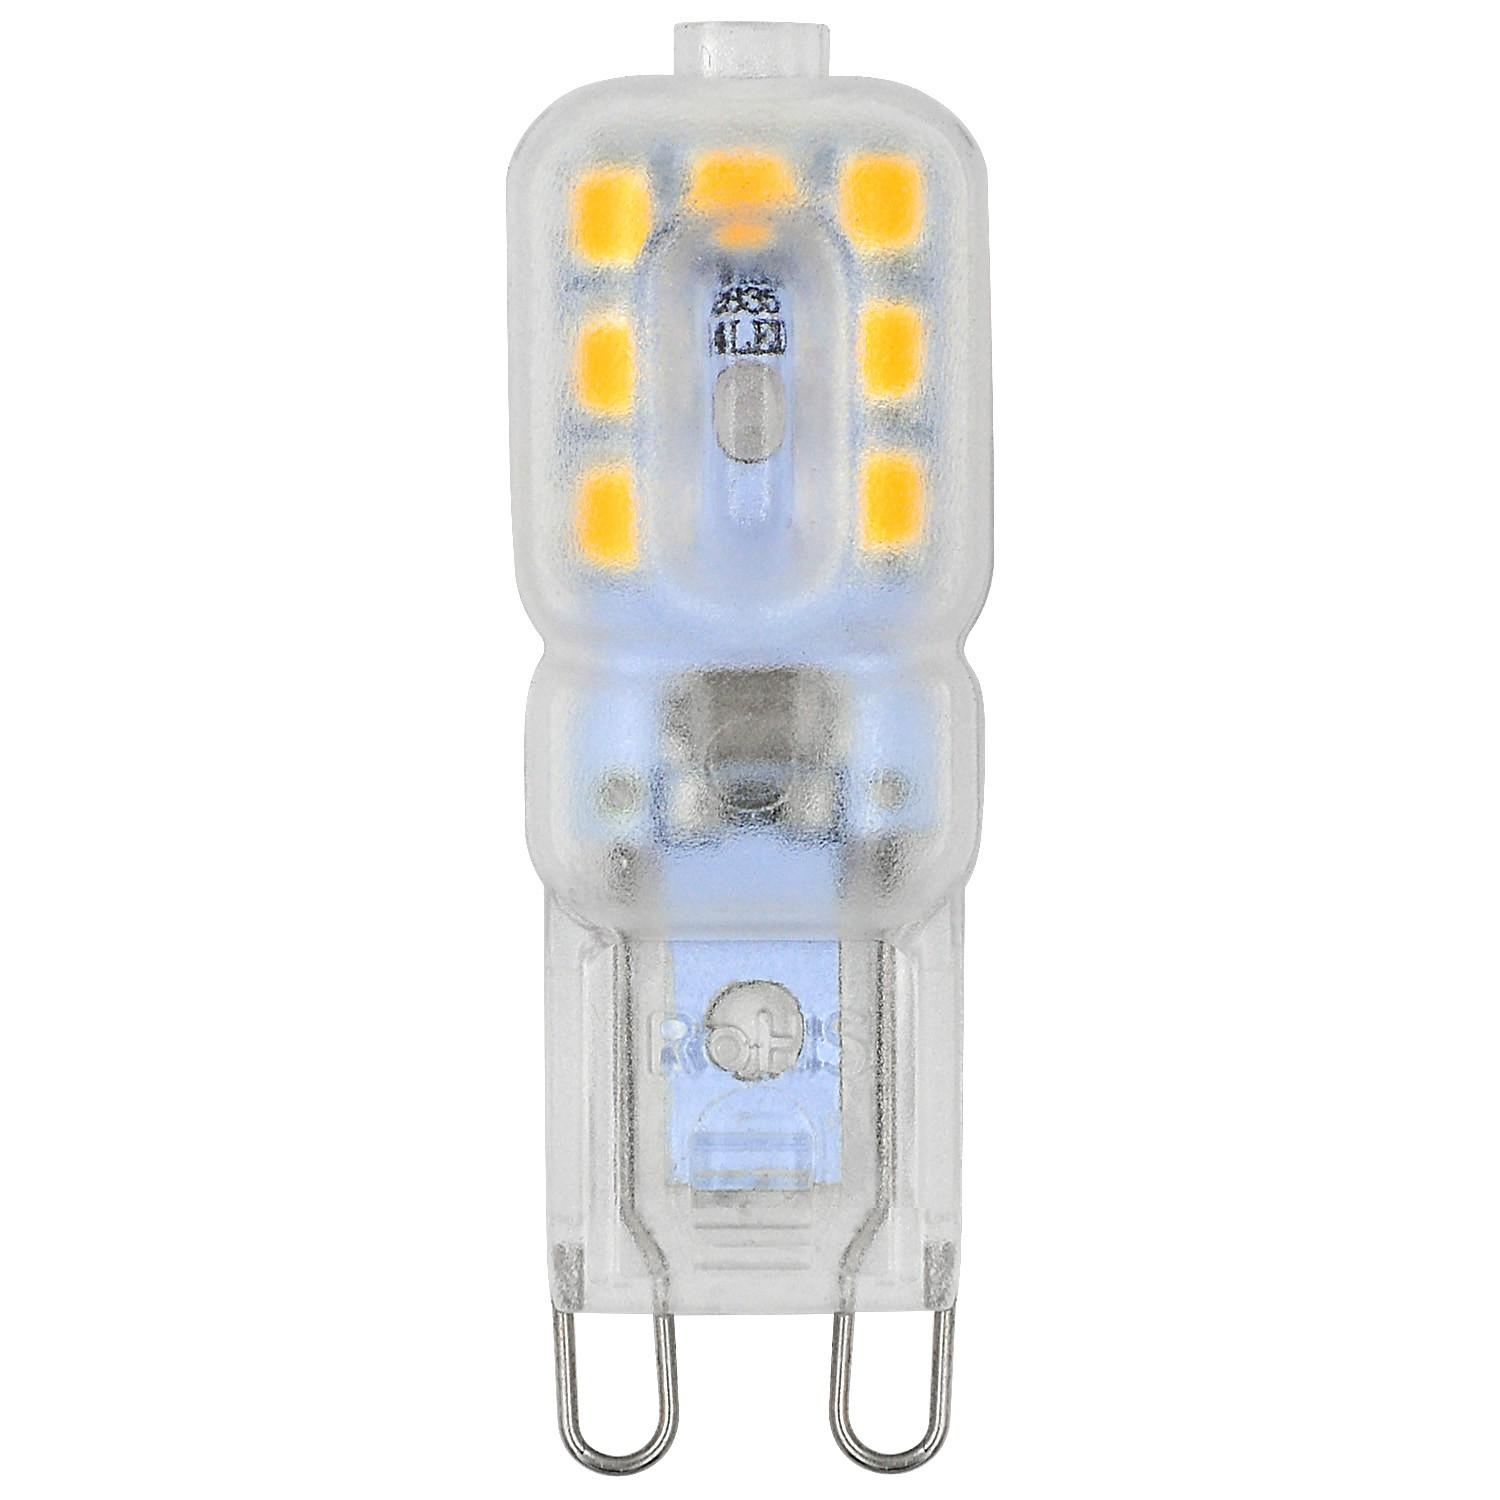 Mengsled Mengs G9 3w Led Light 14x 2835 Smd Led Bulb Lamp With Pc Material In Warm White Cool